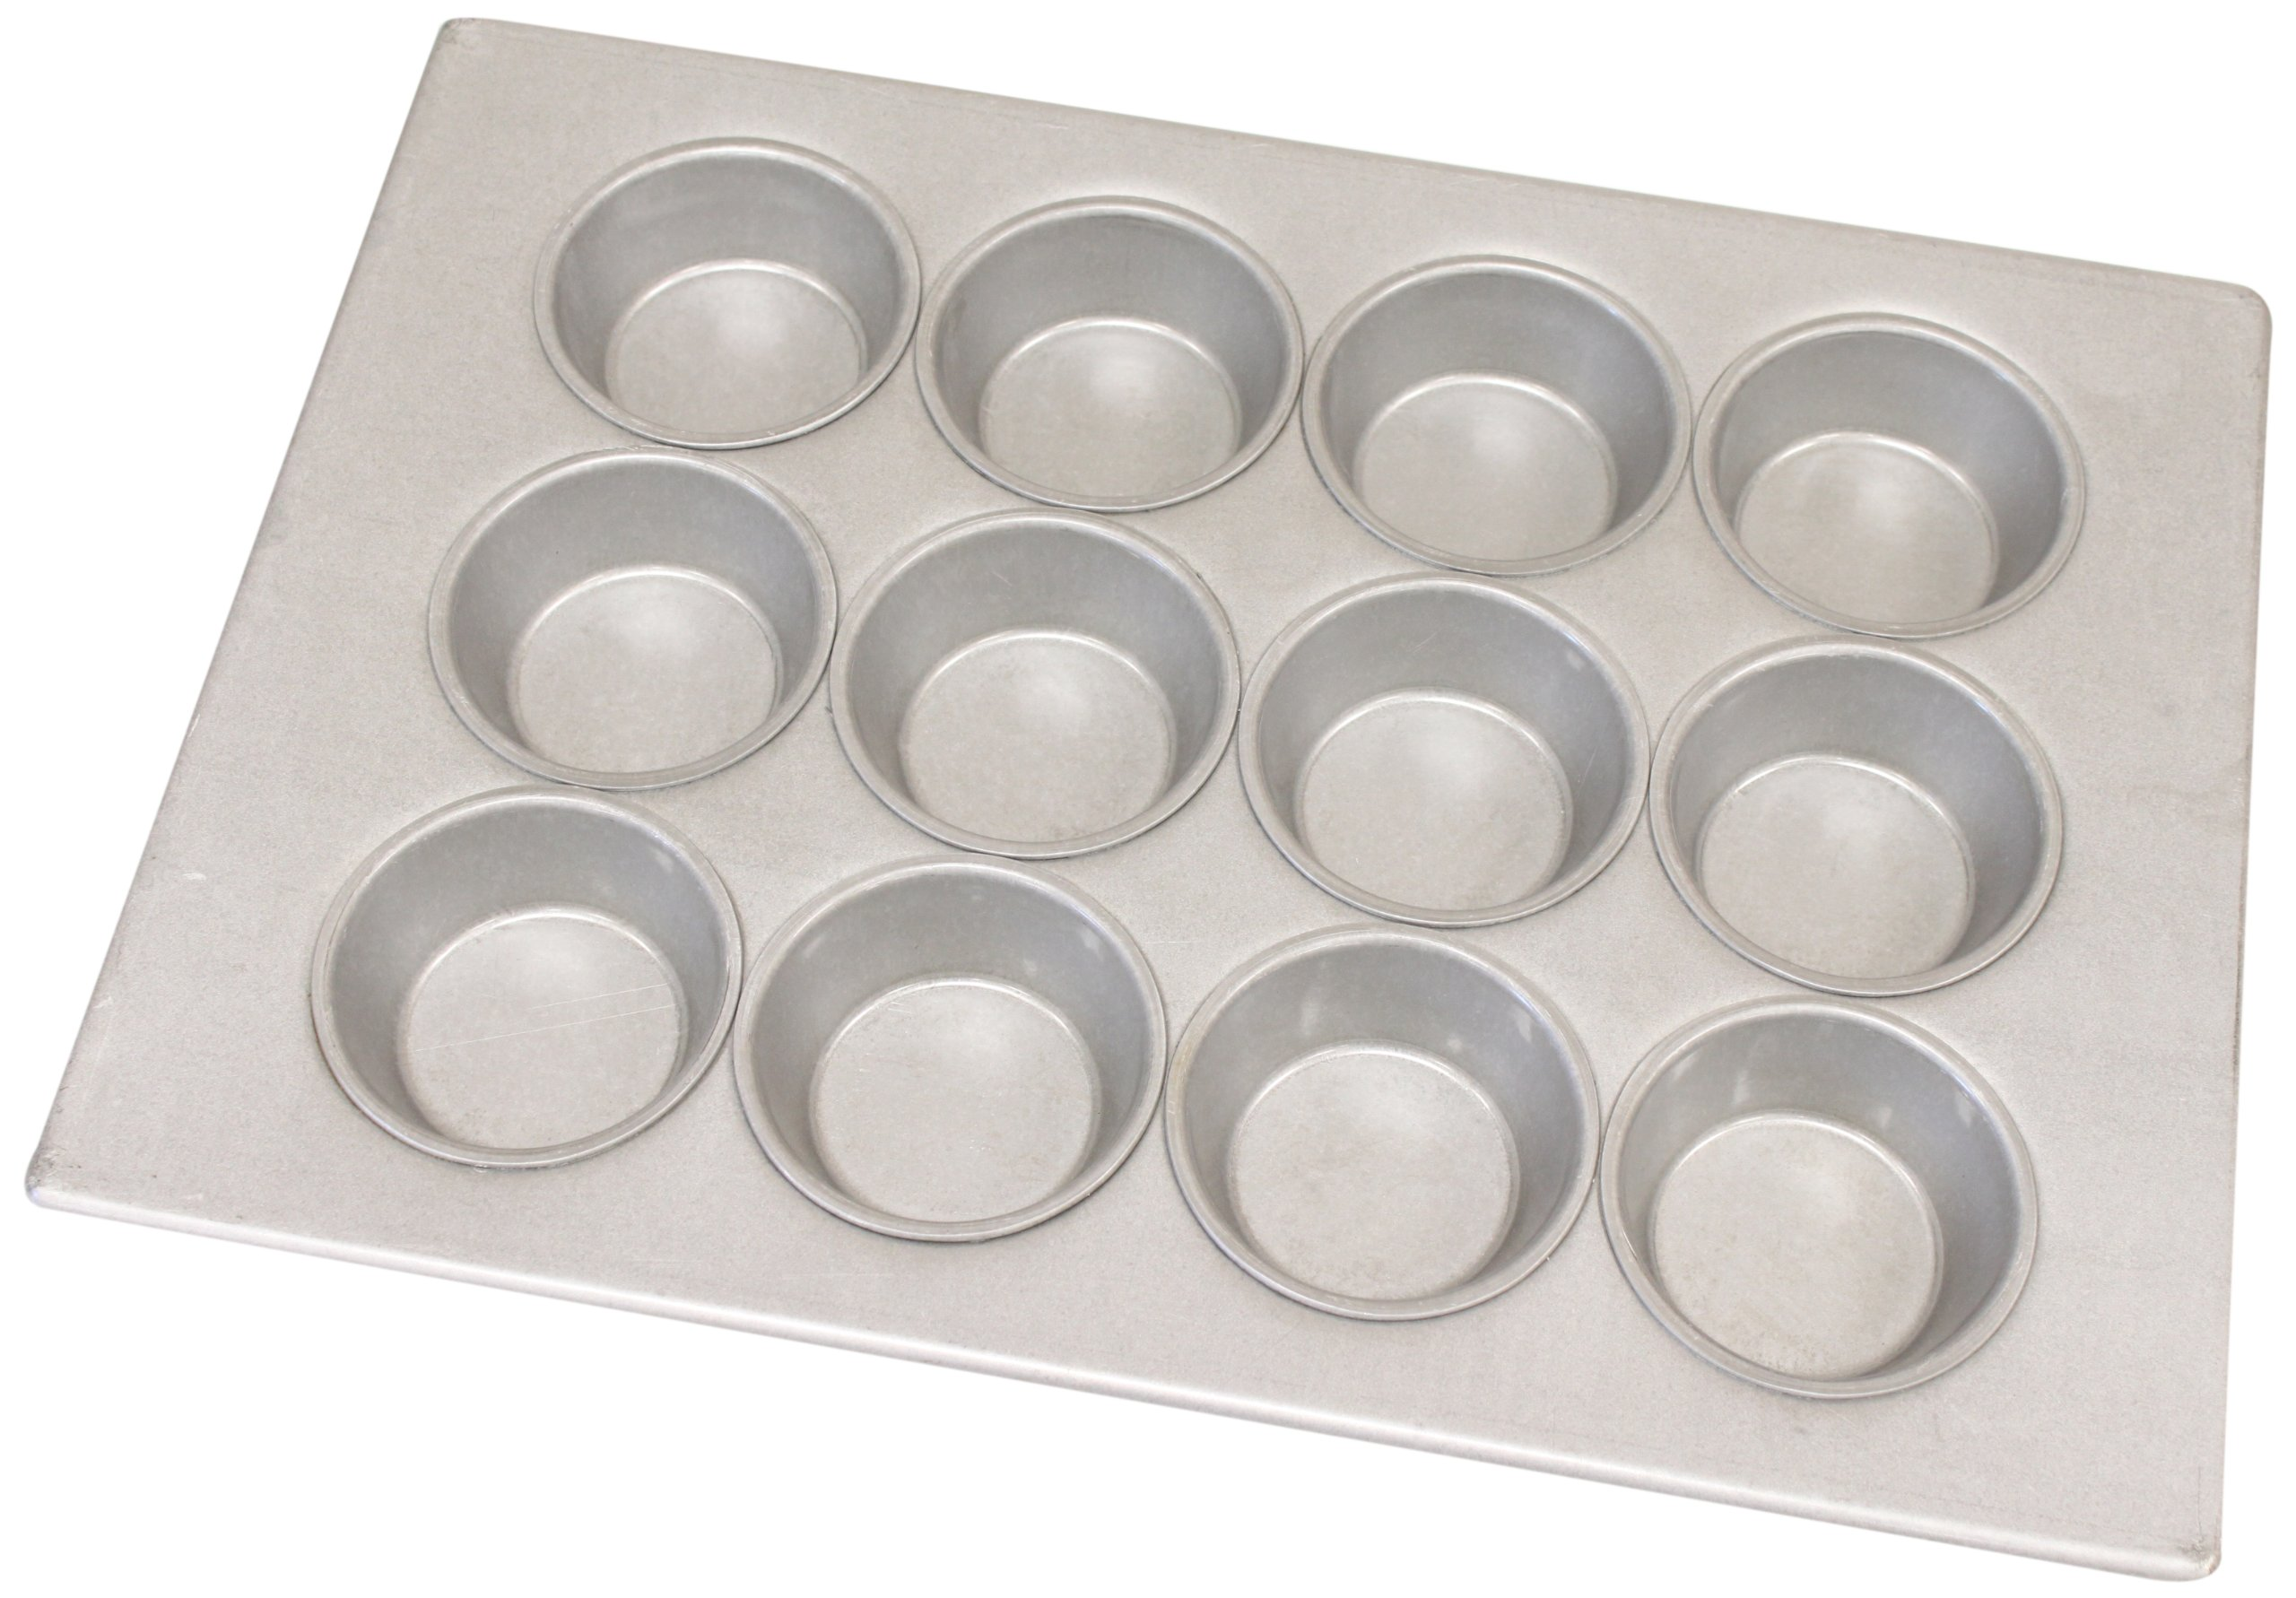 Magna Industries 15310 22-Gauge Aluminized Steel Large Muffin Pan, 3-1/4'' Diameter, 3 x 4 Cups Layout (Pack of 12)